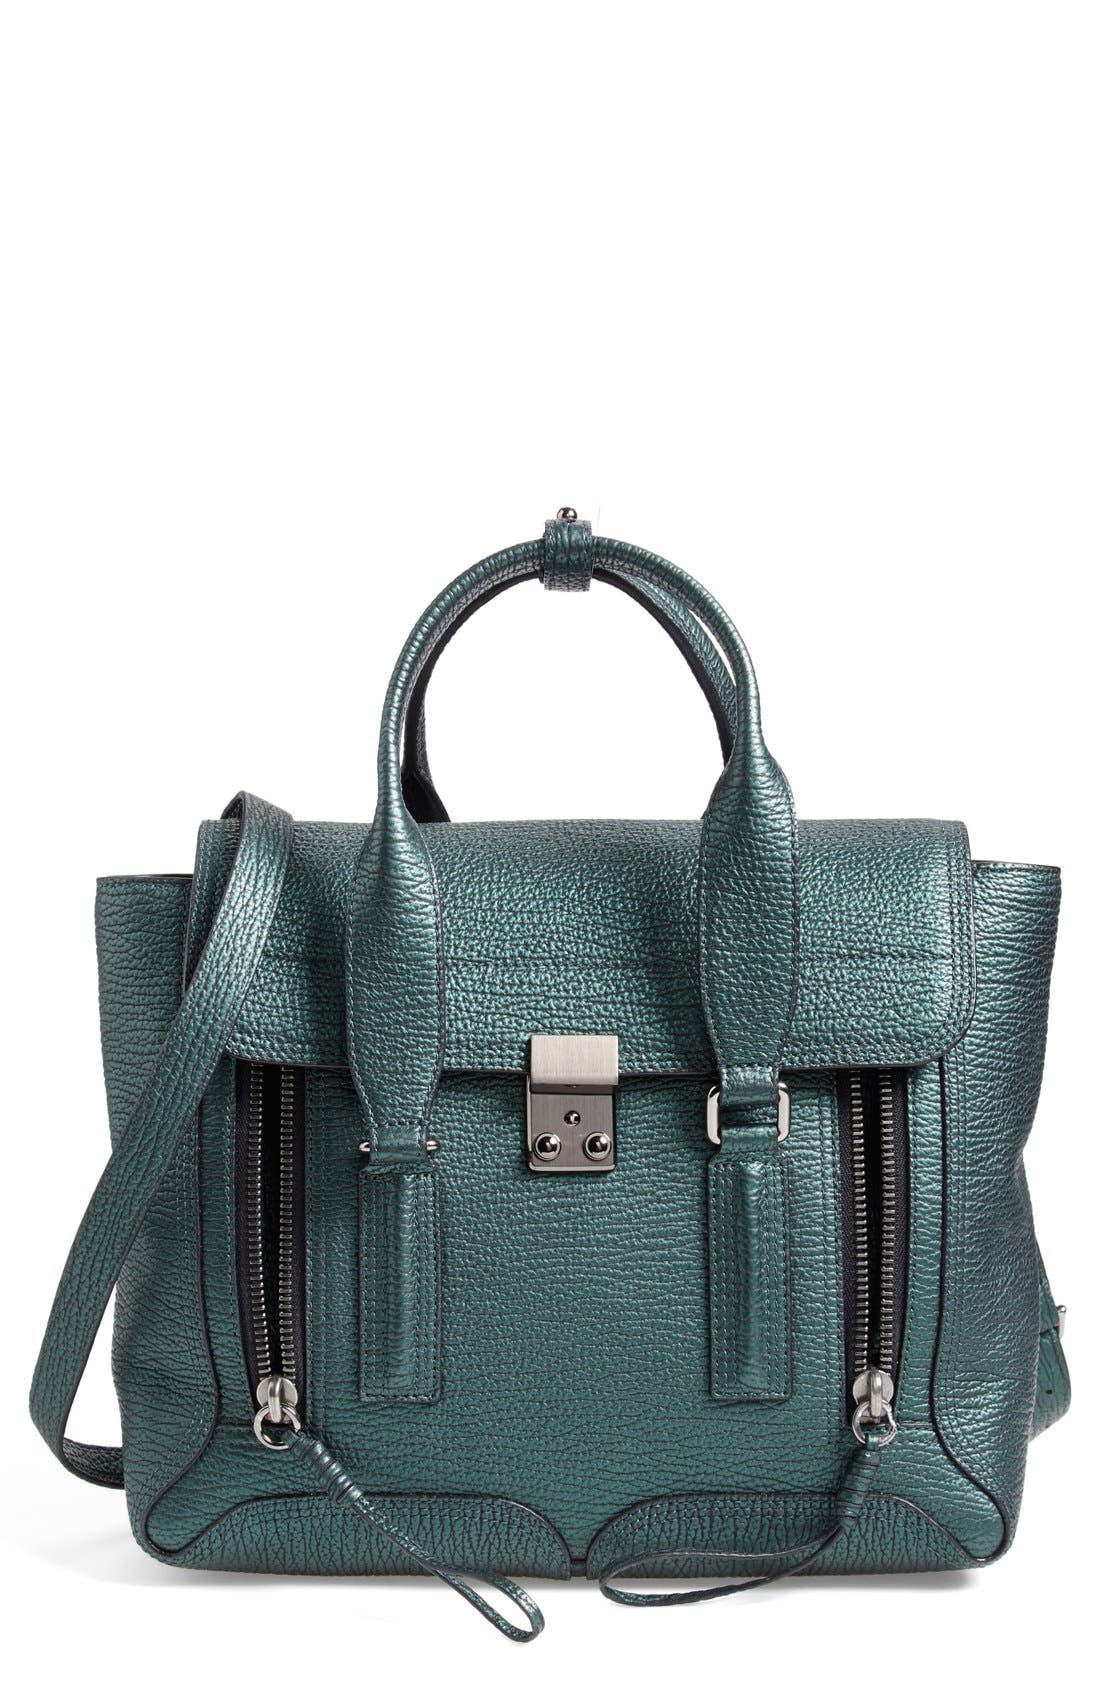 Main Image - 3.1 Phillip Lim 'Pashli Medium' Leather Satchel